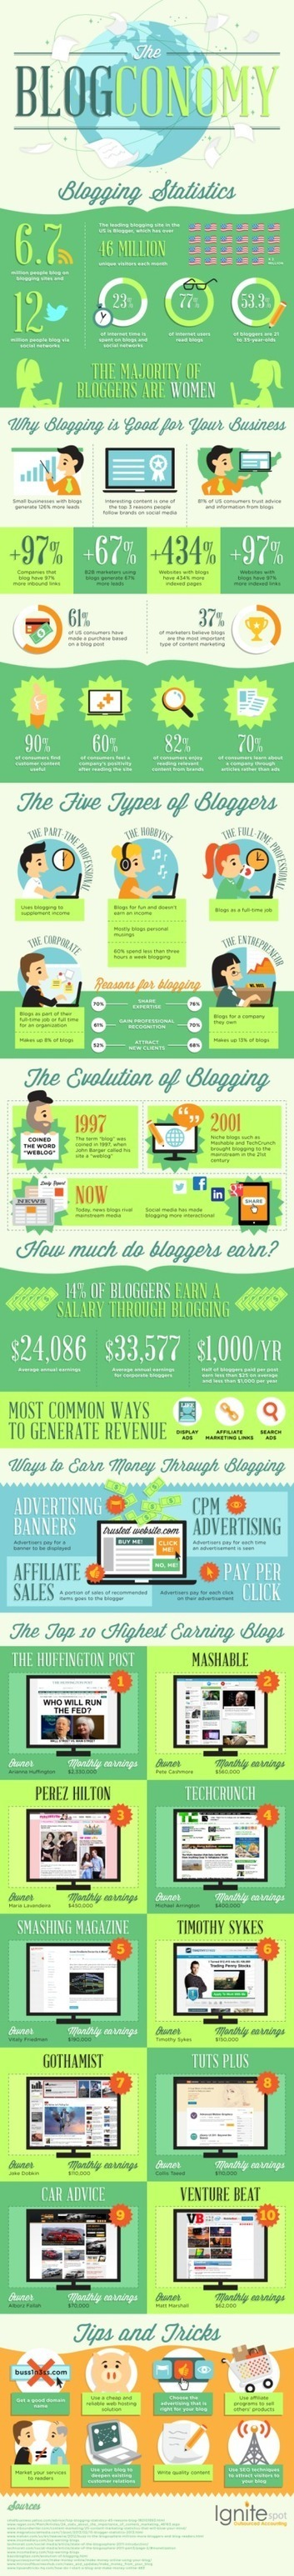 Why Every Business Needs a Blog [Infographic] | MarketingHits | Scoop.it